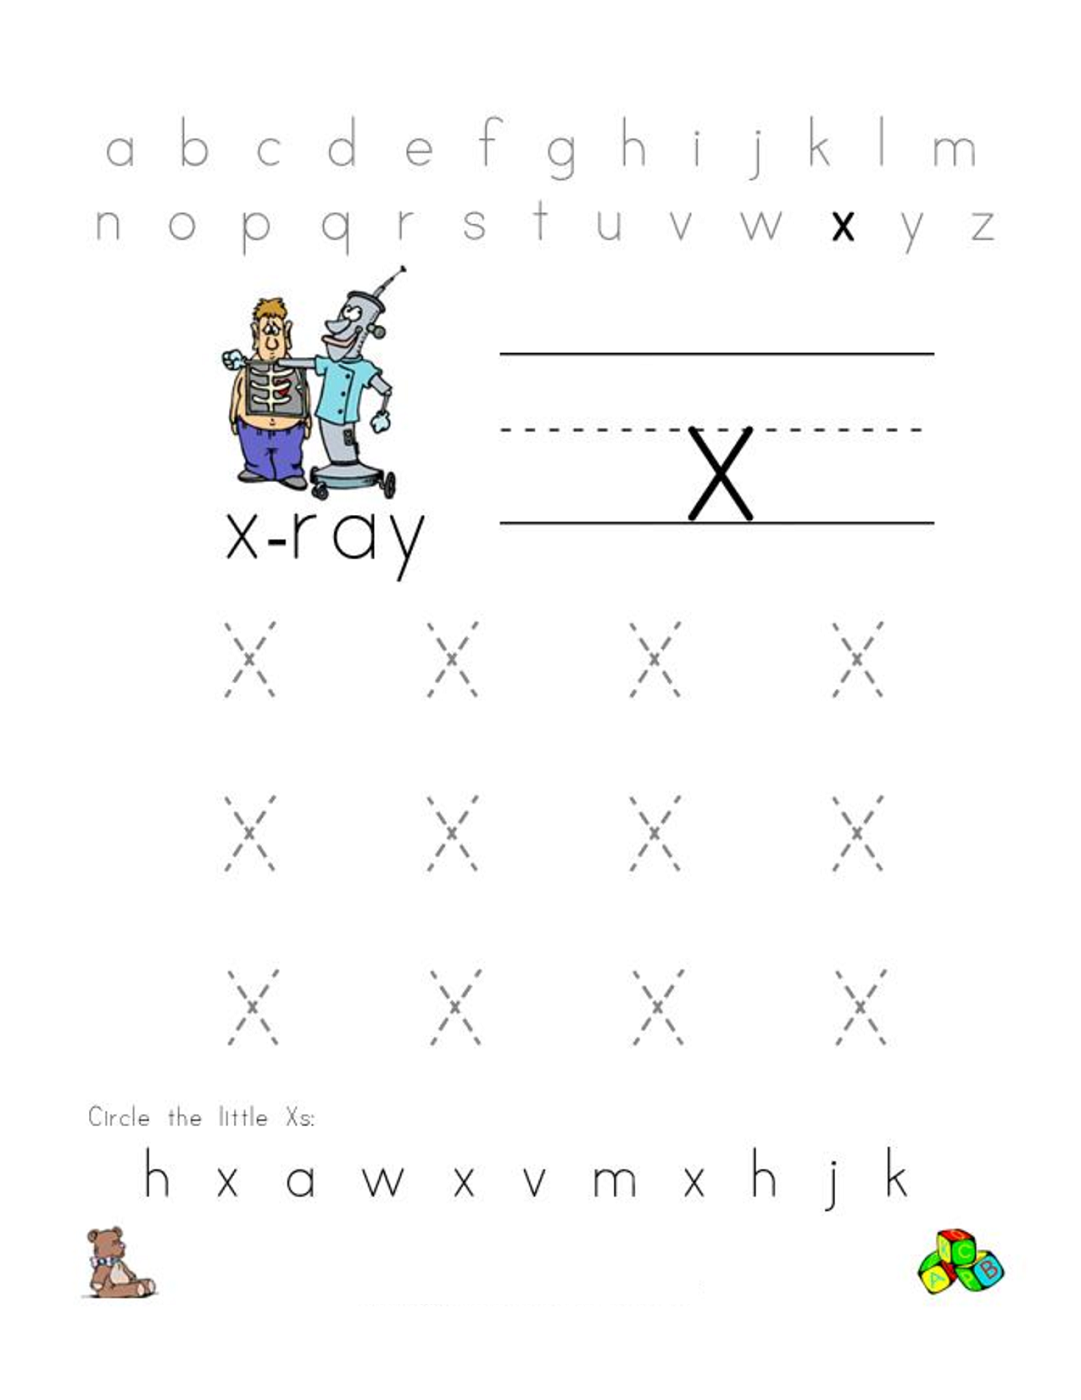 English Alphabet Worksheet For Kindergarten Activity